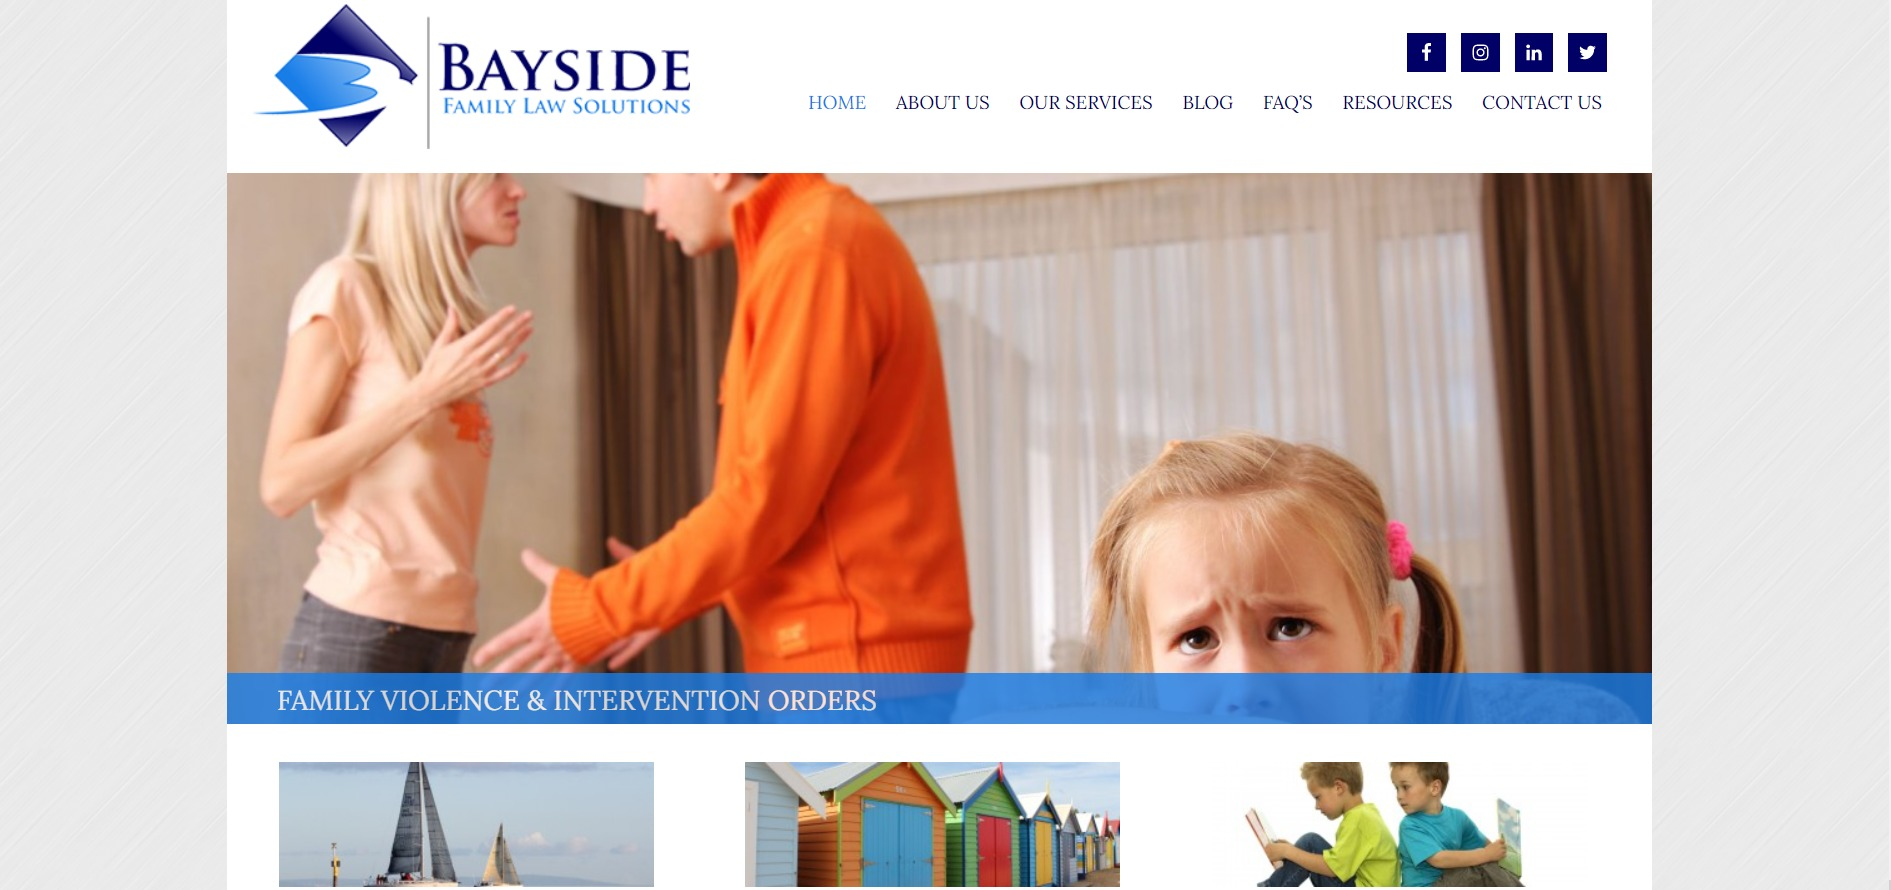 Bayside Family Law Solutions